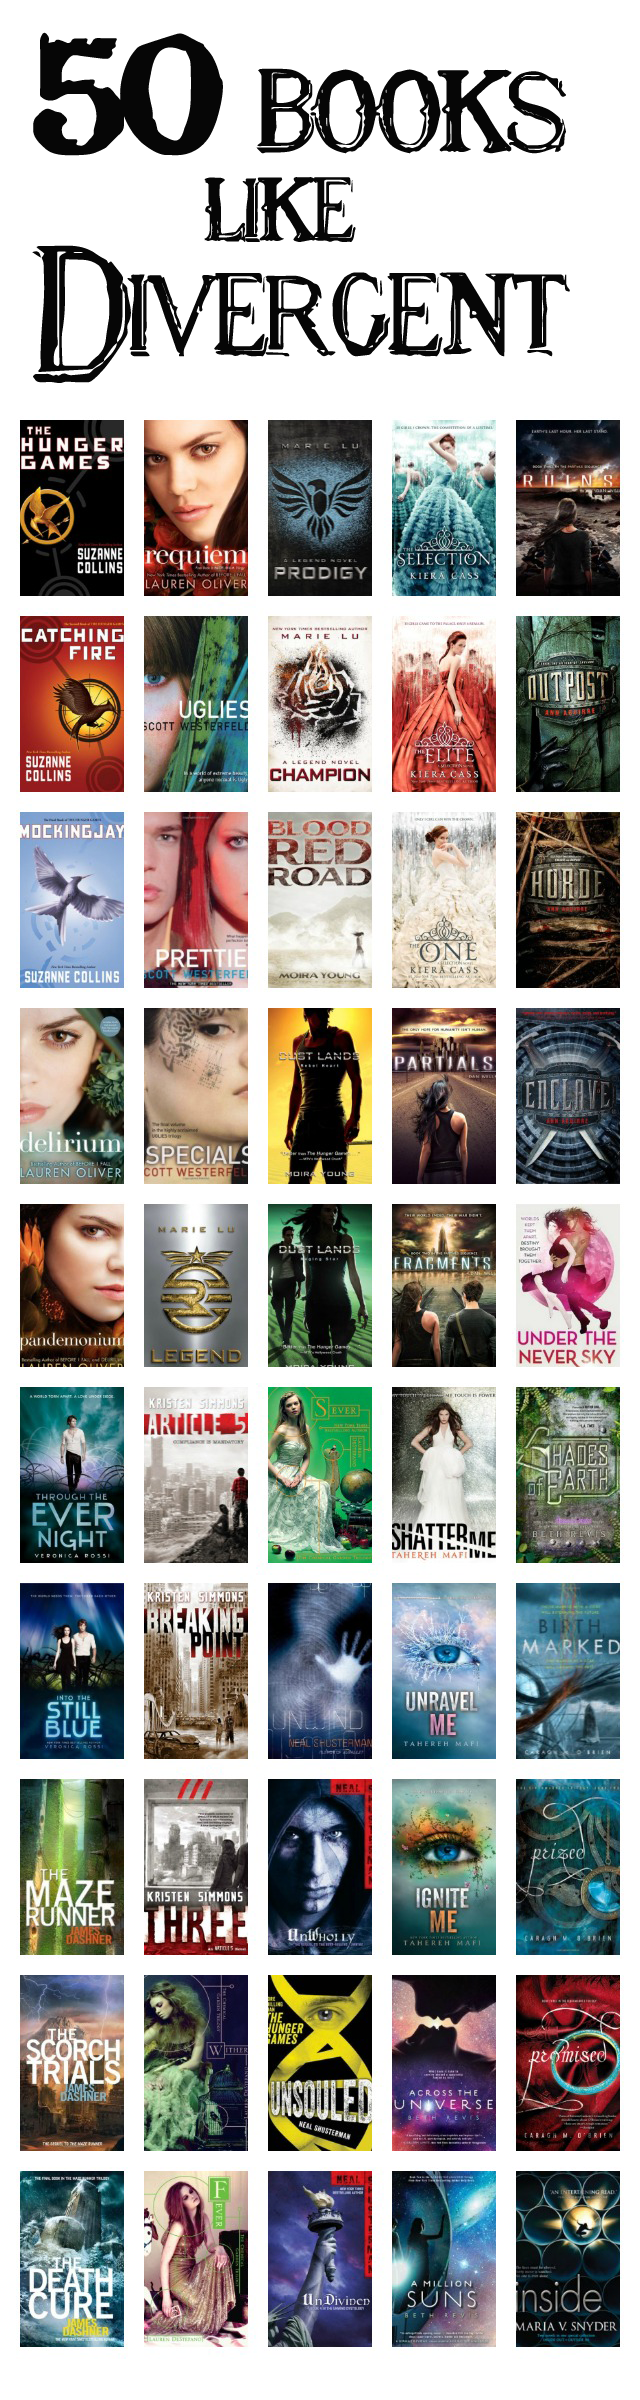 50 Books Like Divergent Books Like Divergent Books Book Lists